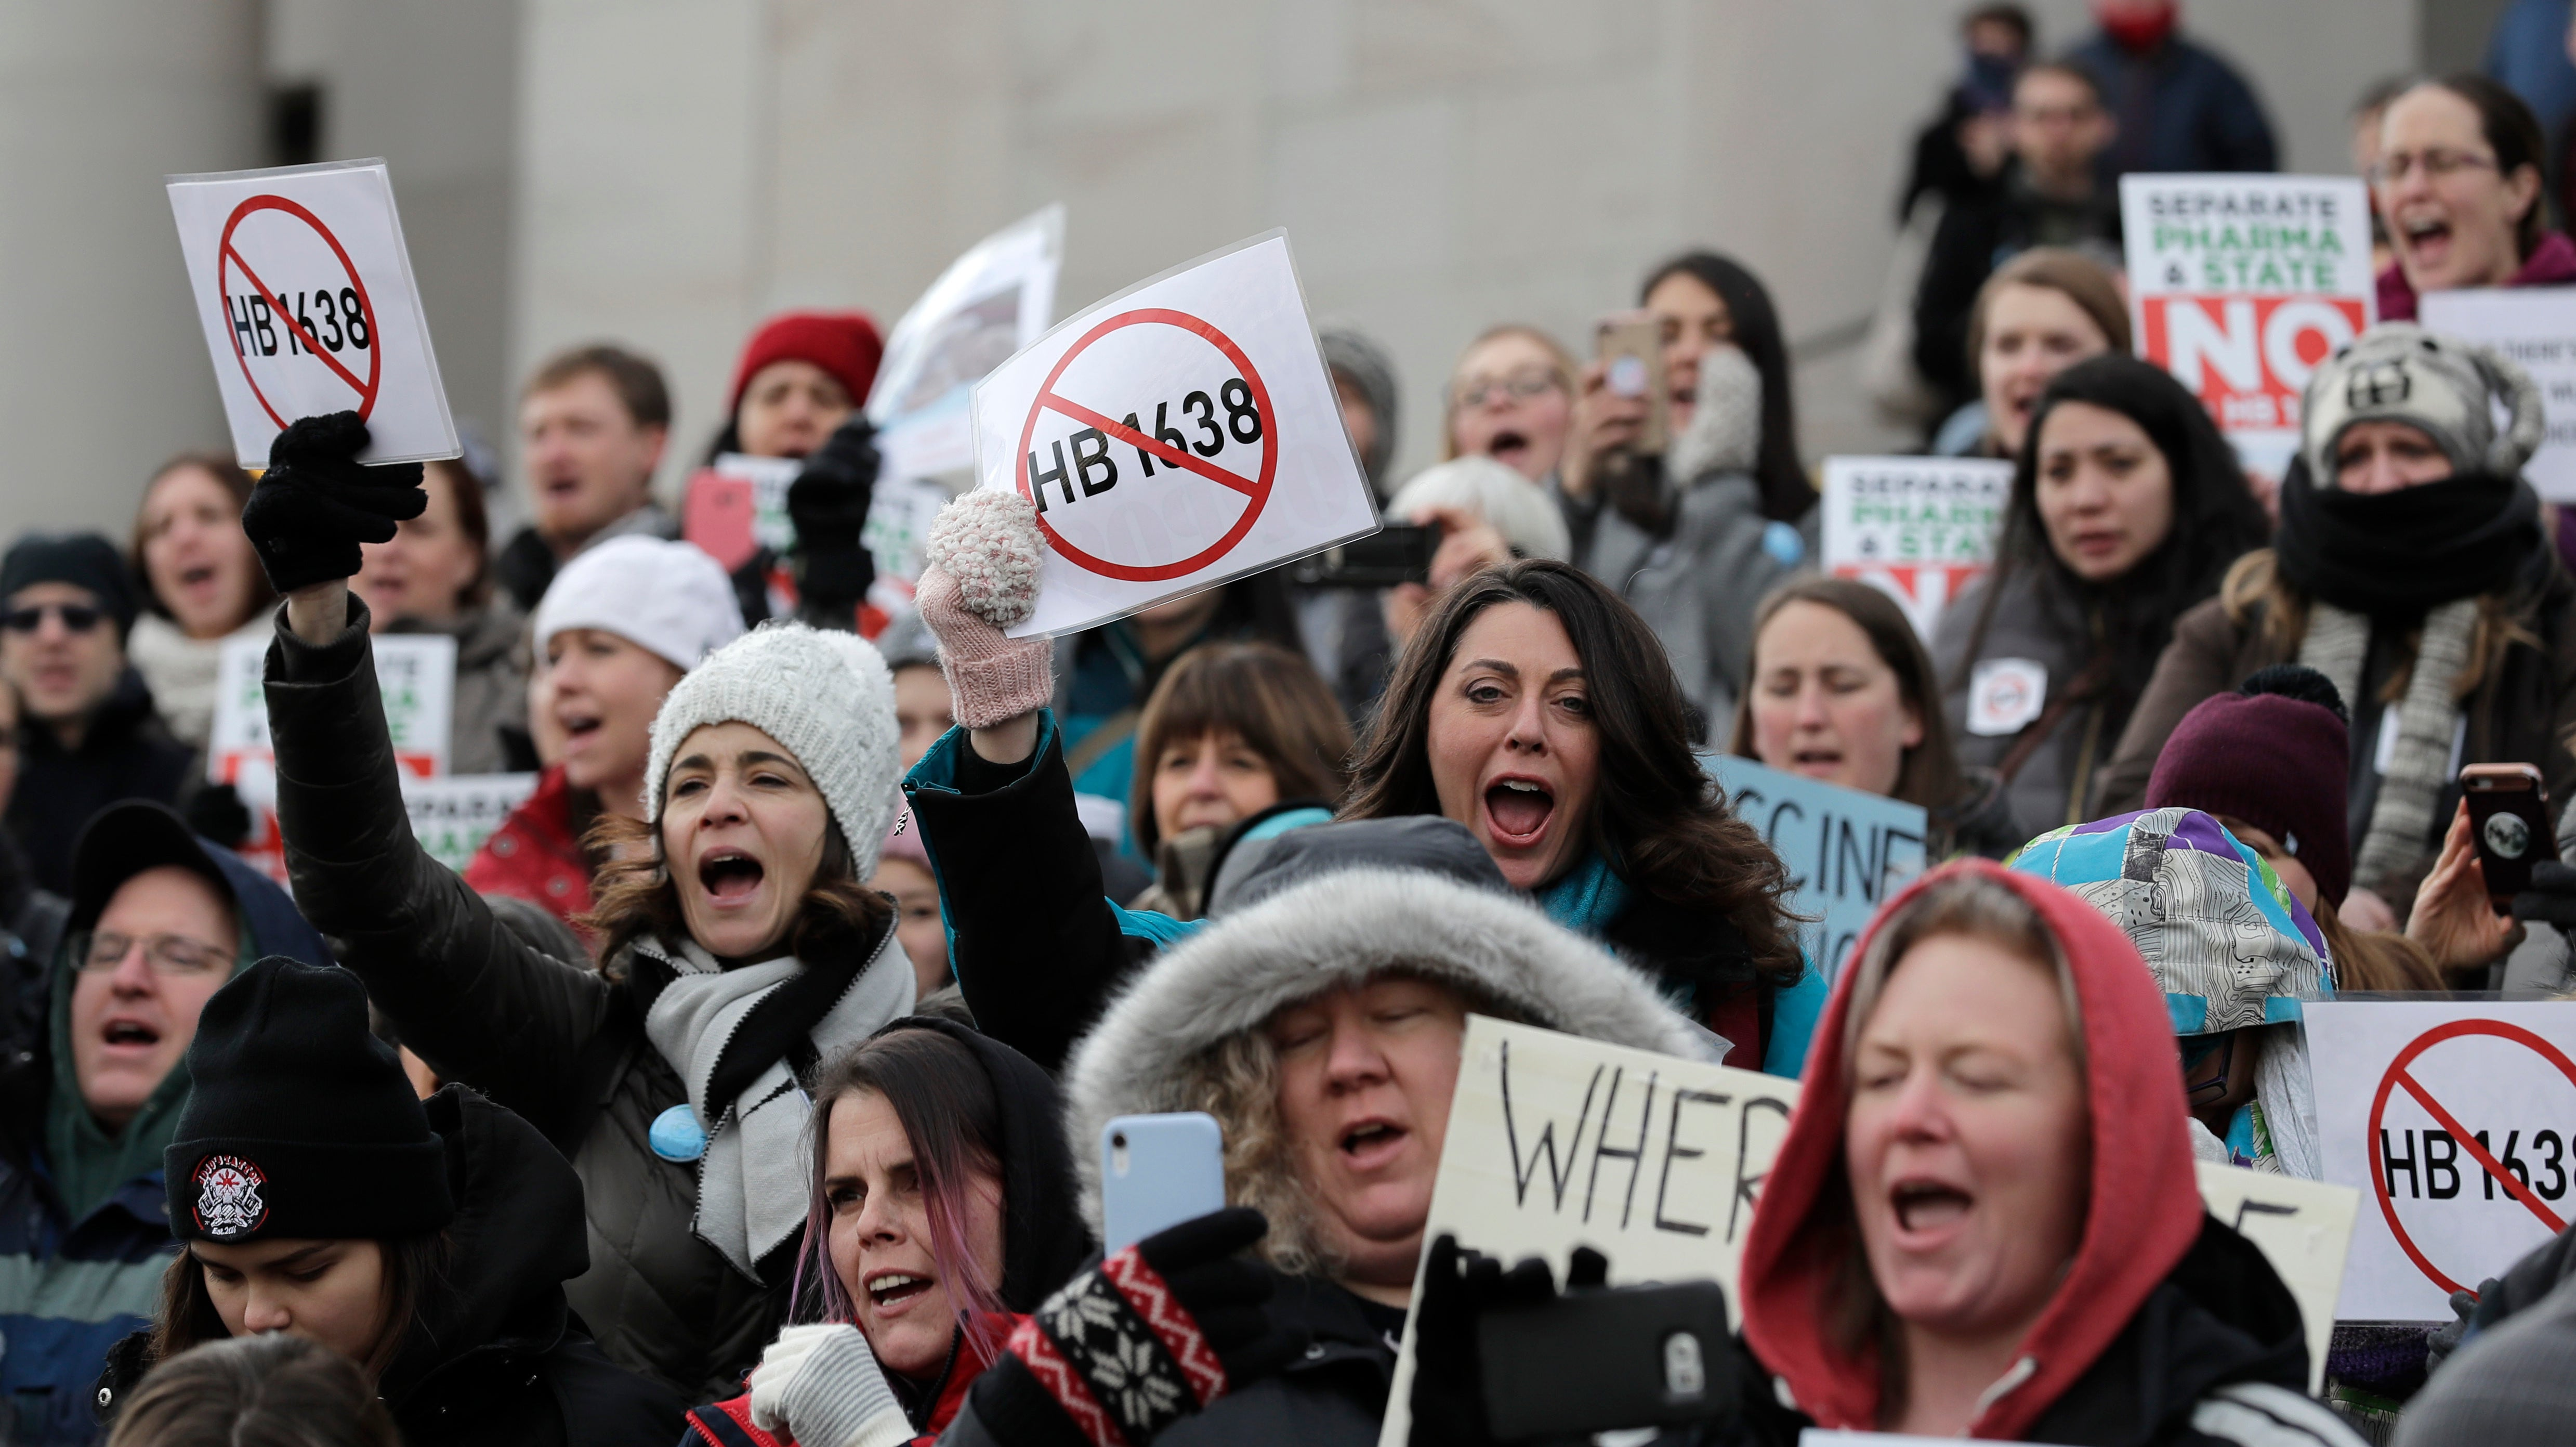 Anti-Vaccination Rally In U.S. Amid A Major Measles Outbreak Is A Little Too On The Nose